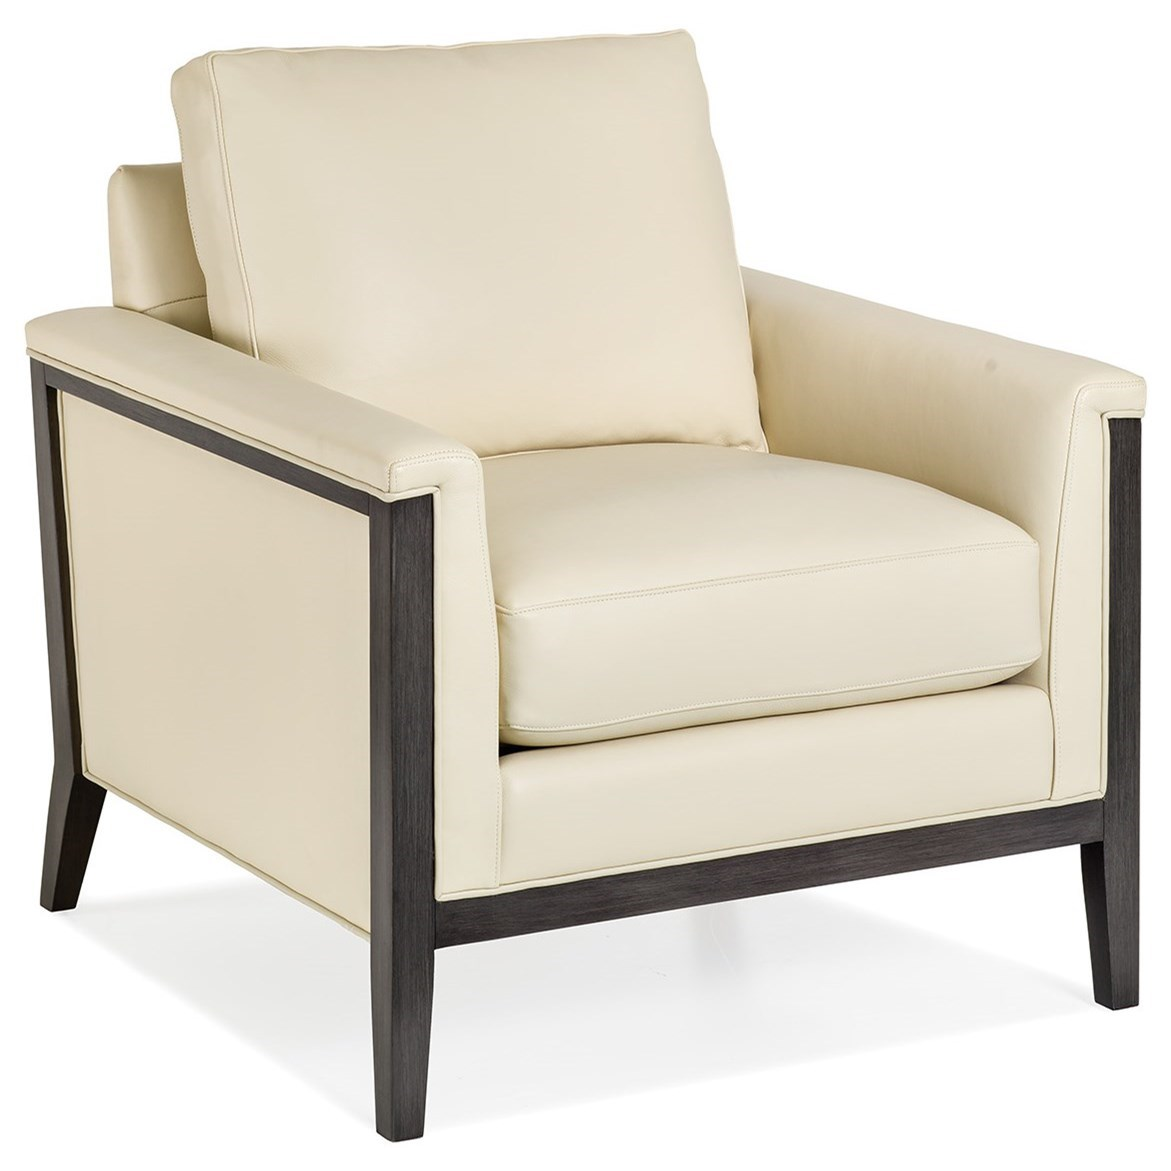 Ava Chair by Hancock & Moore at Goods Furniture